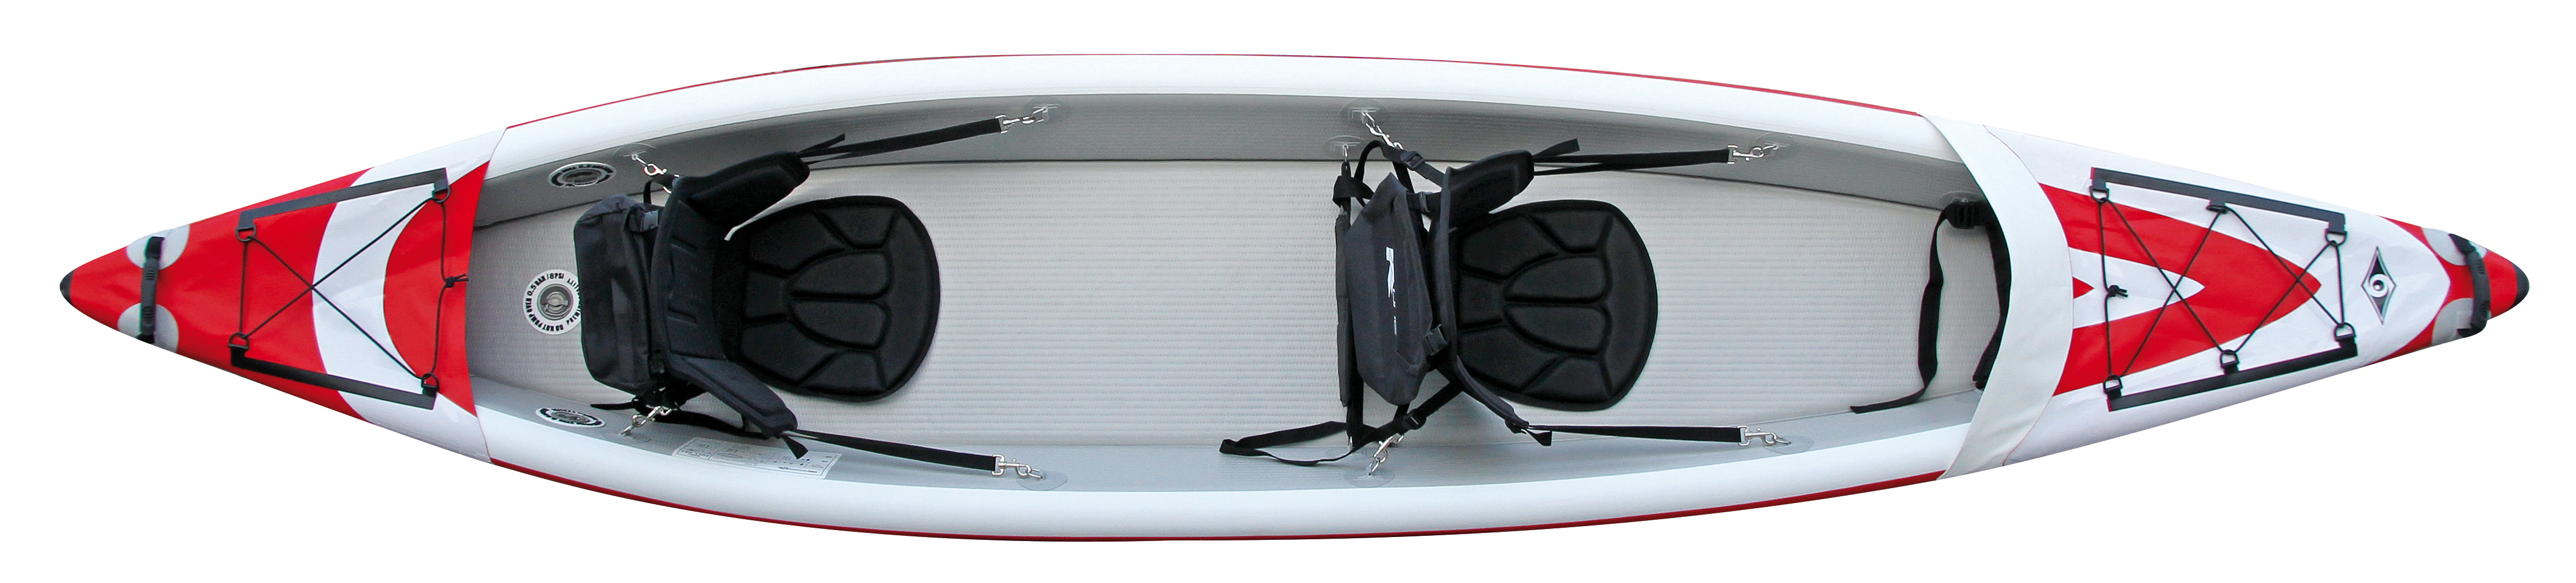 Kayak gonflable bic HP 2